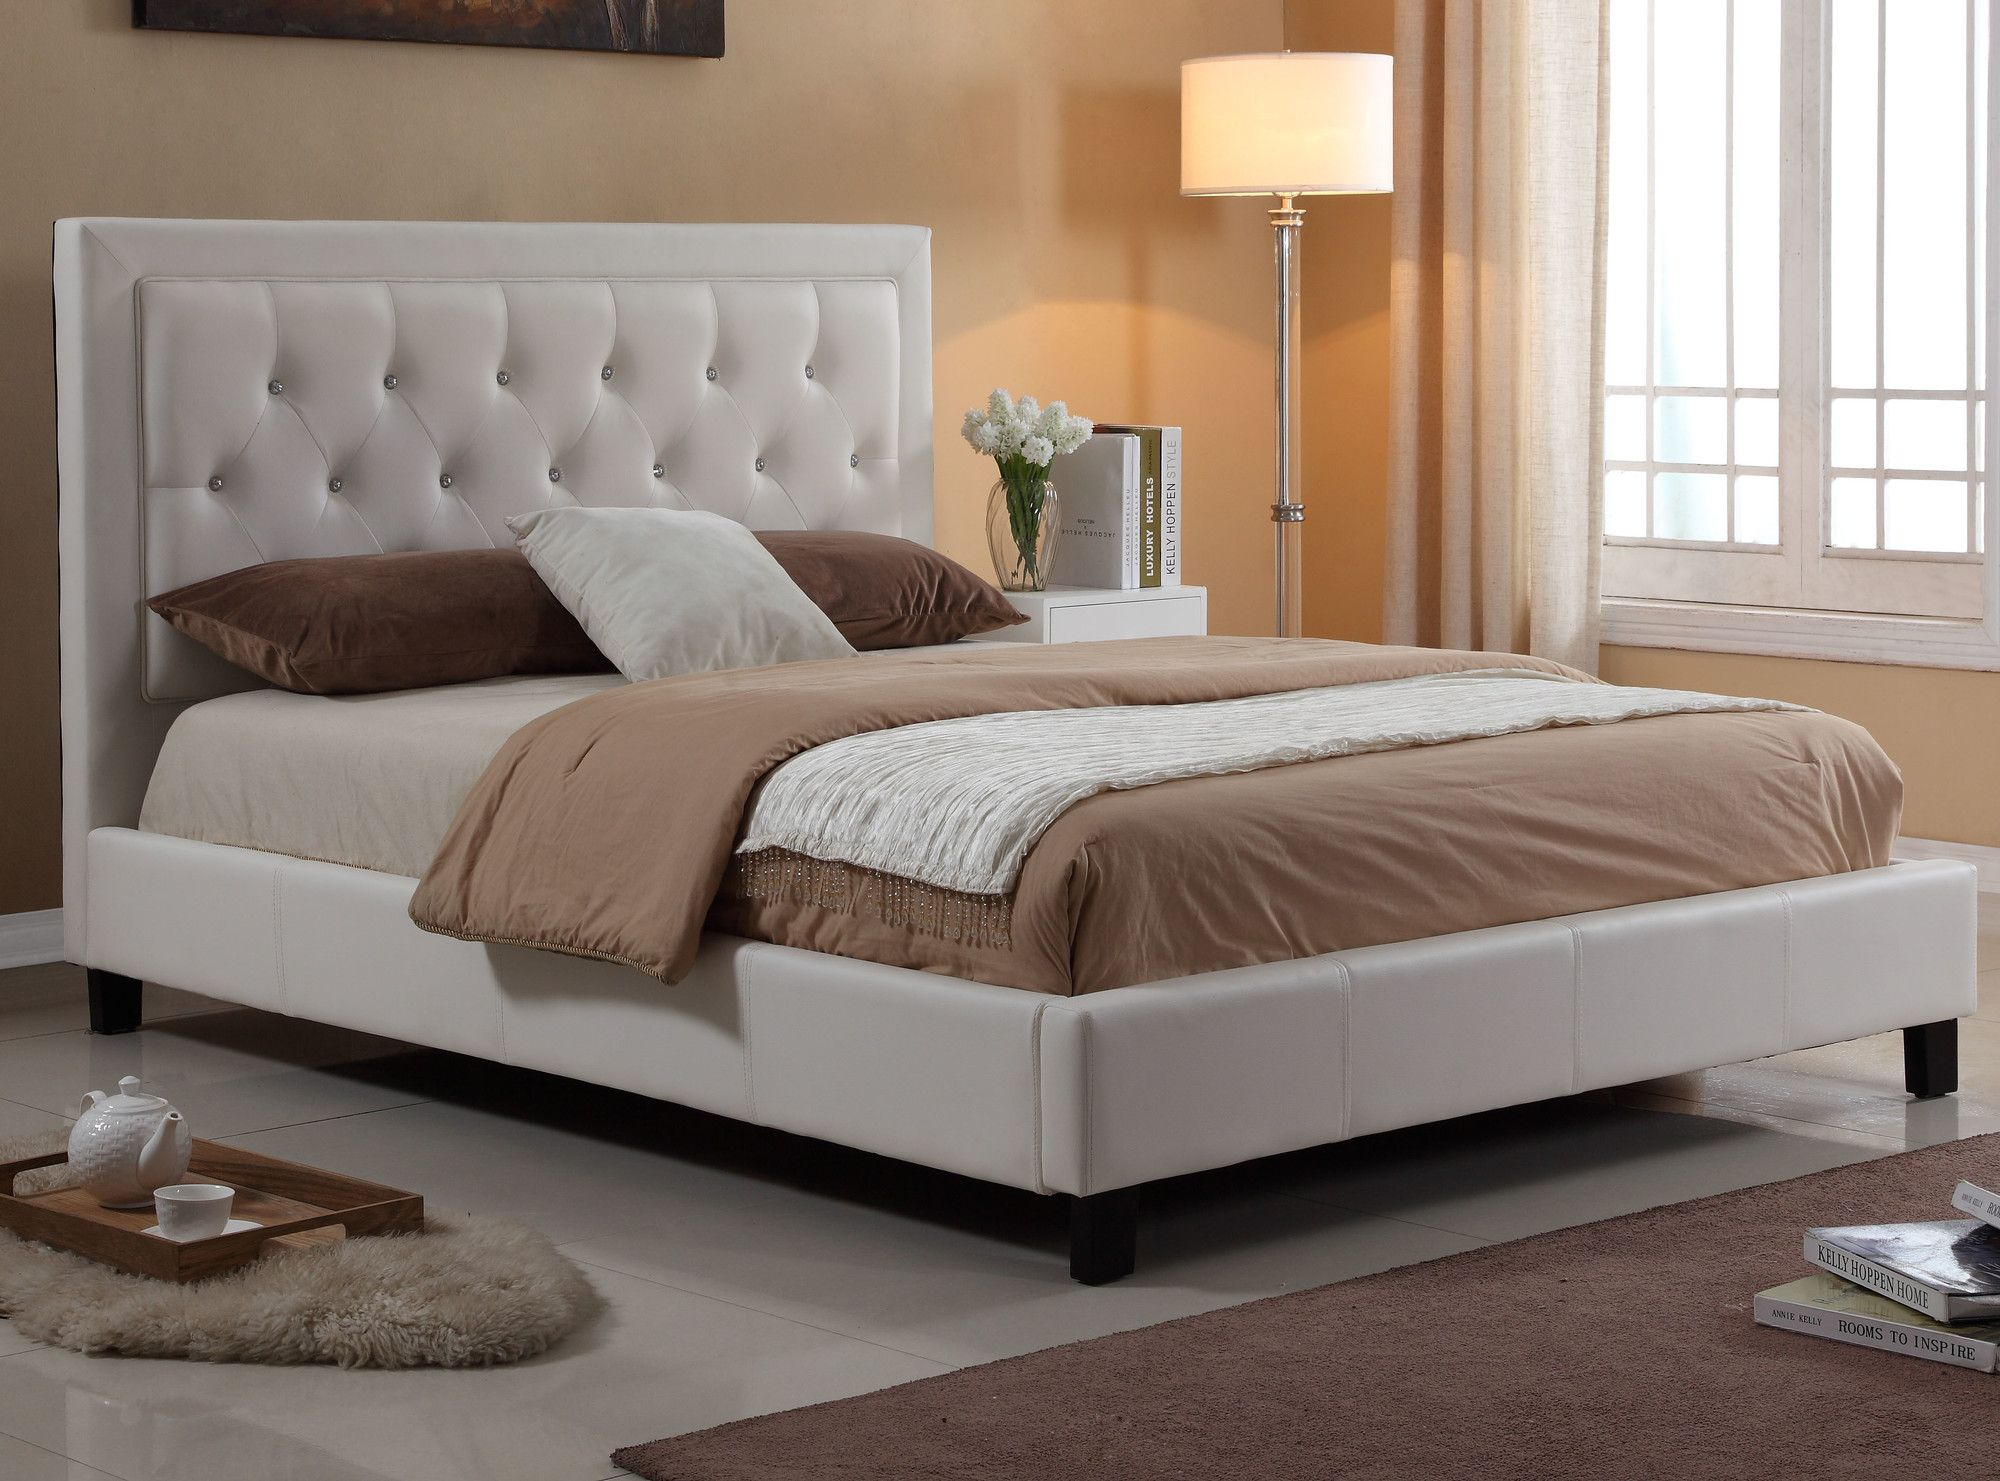 haverford diamond headboard upholstered platform bed upholstered